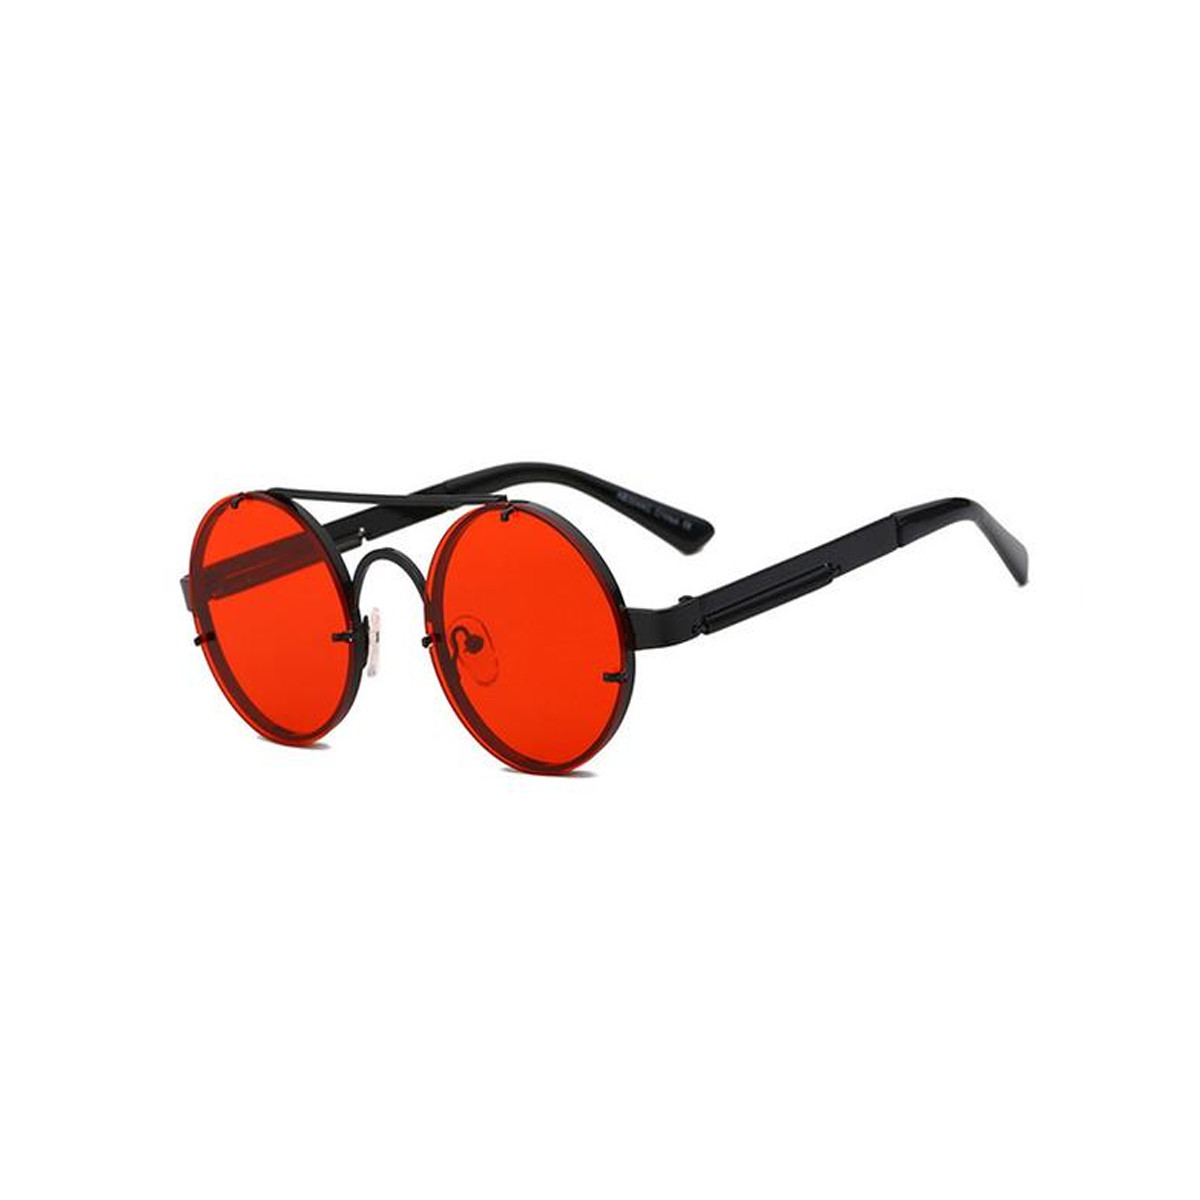 4a37ff5f58b red lens sunglasses men round vintage 2018 steampunk sun glasses for women  gold silver metal flat